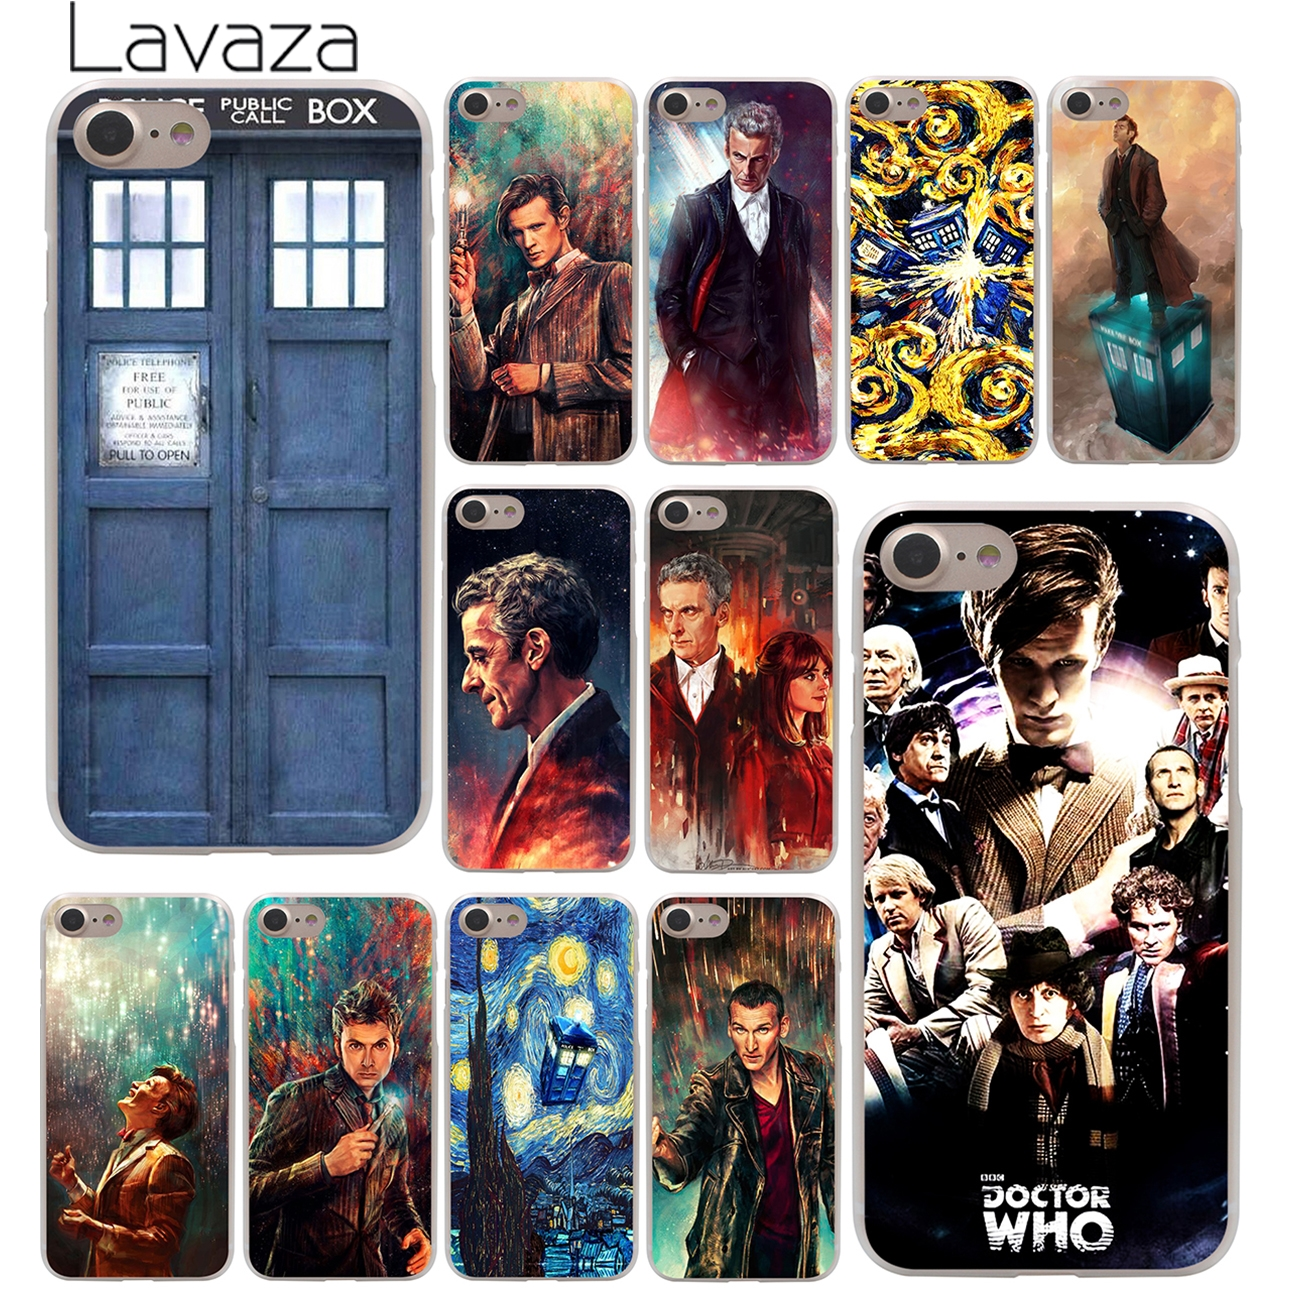 Tardis Box Doctor Who Hard Case Transparent for iPhone 7 7 Plus 6 6s Plus 5 5S SE 5C 4 4S